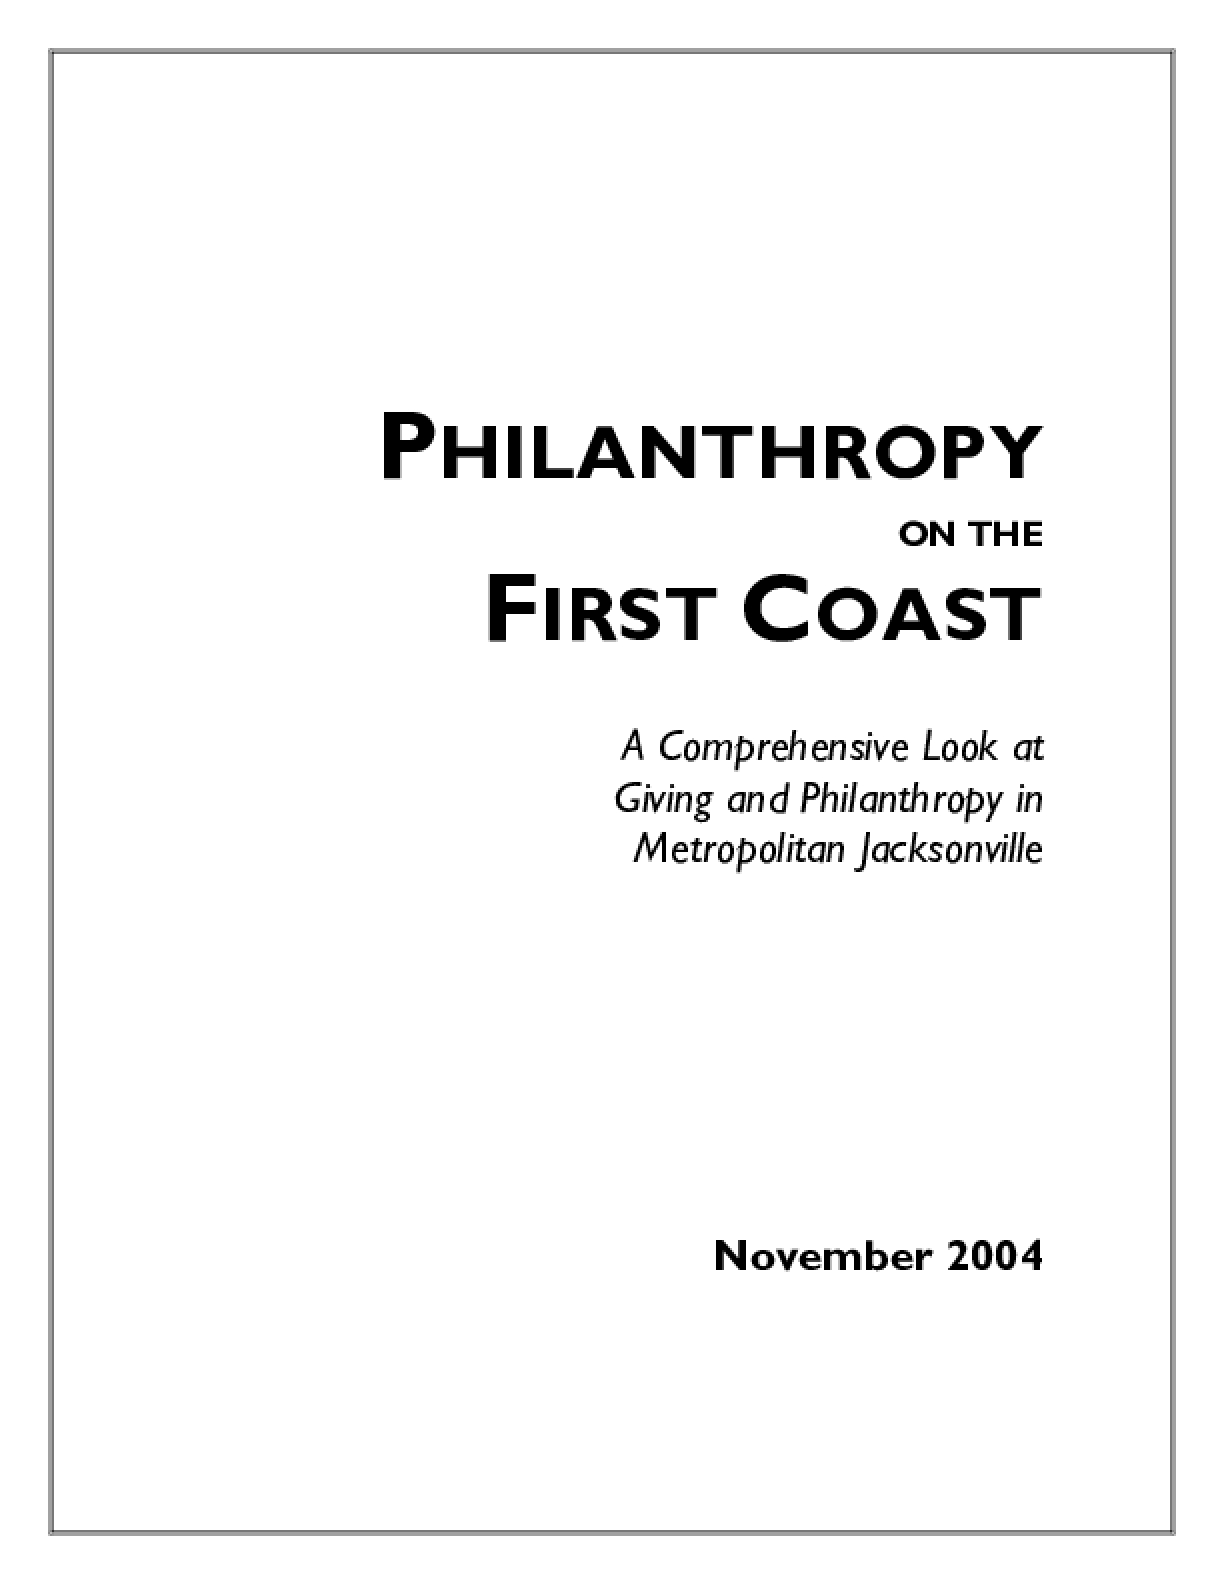 Philanthropy on the First Coast: A Comprehensive Look at Giving and Philanthropy in Metorpolitan Jacksonville